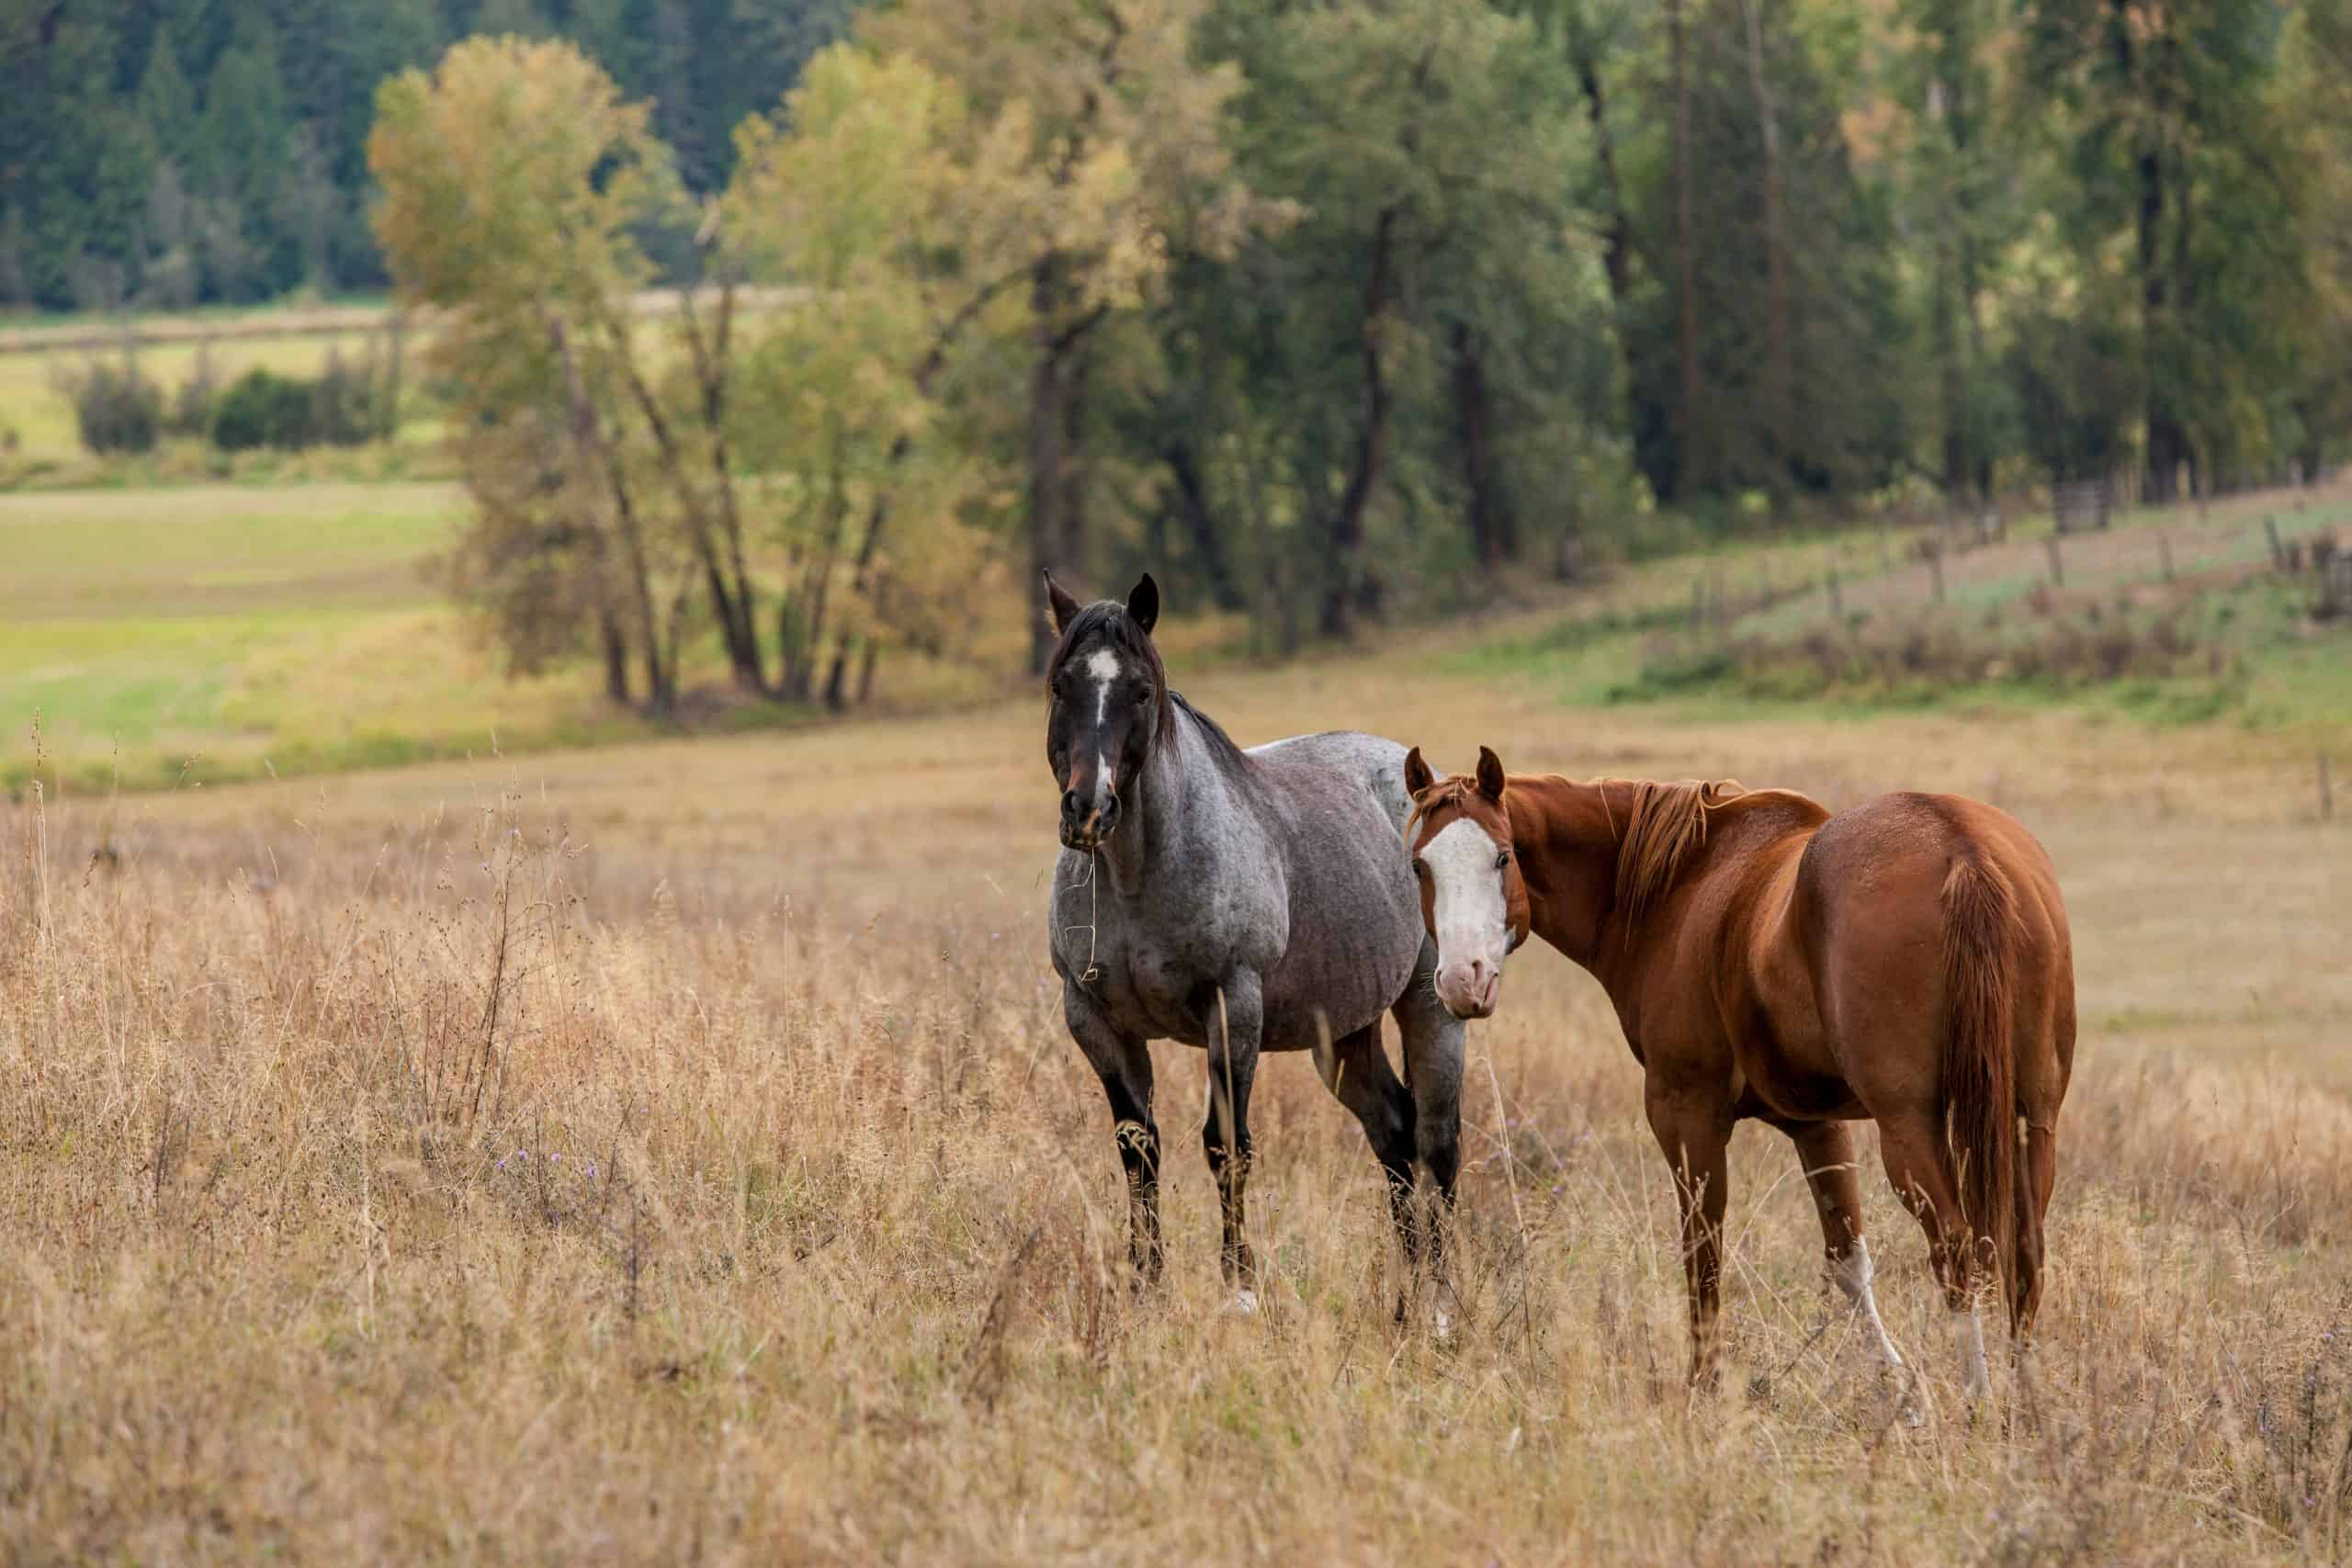 Horses are out in the pasture in north Idaho grazing on the grass.